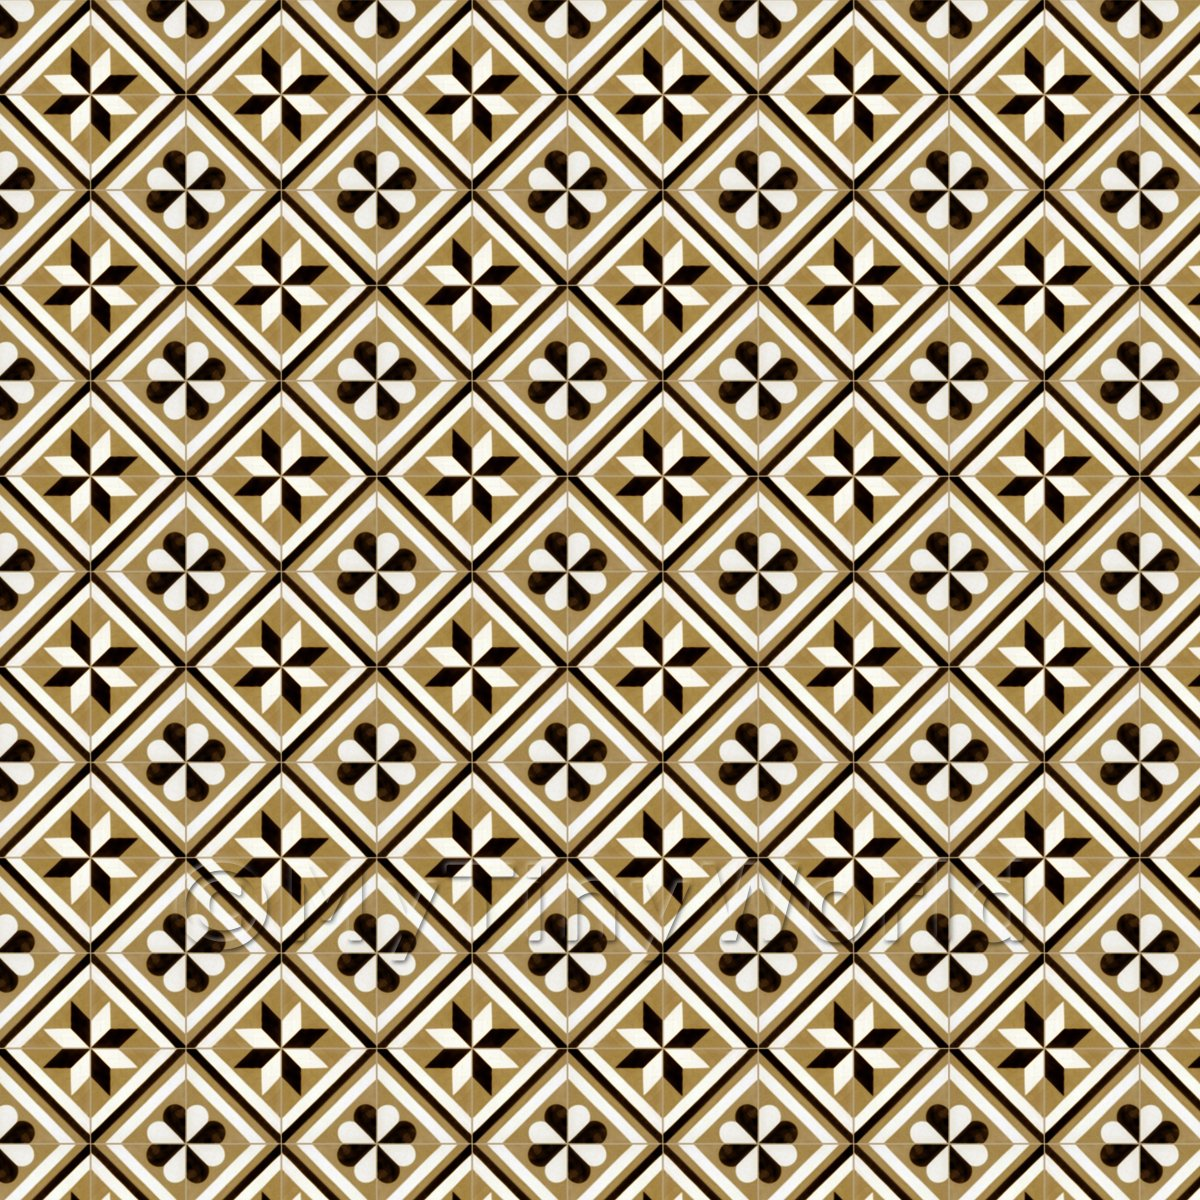 1:12th Pale Chestnut Geometric Design Tile Sheet With Matching Grout